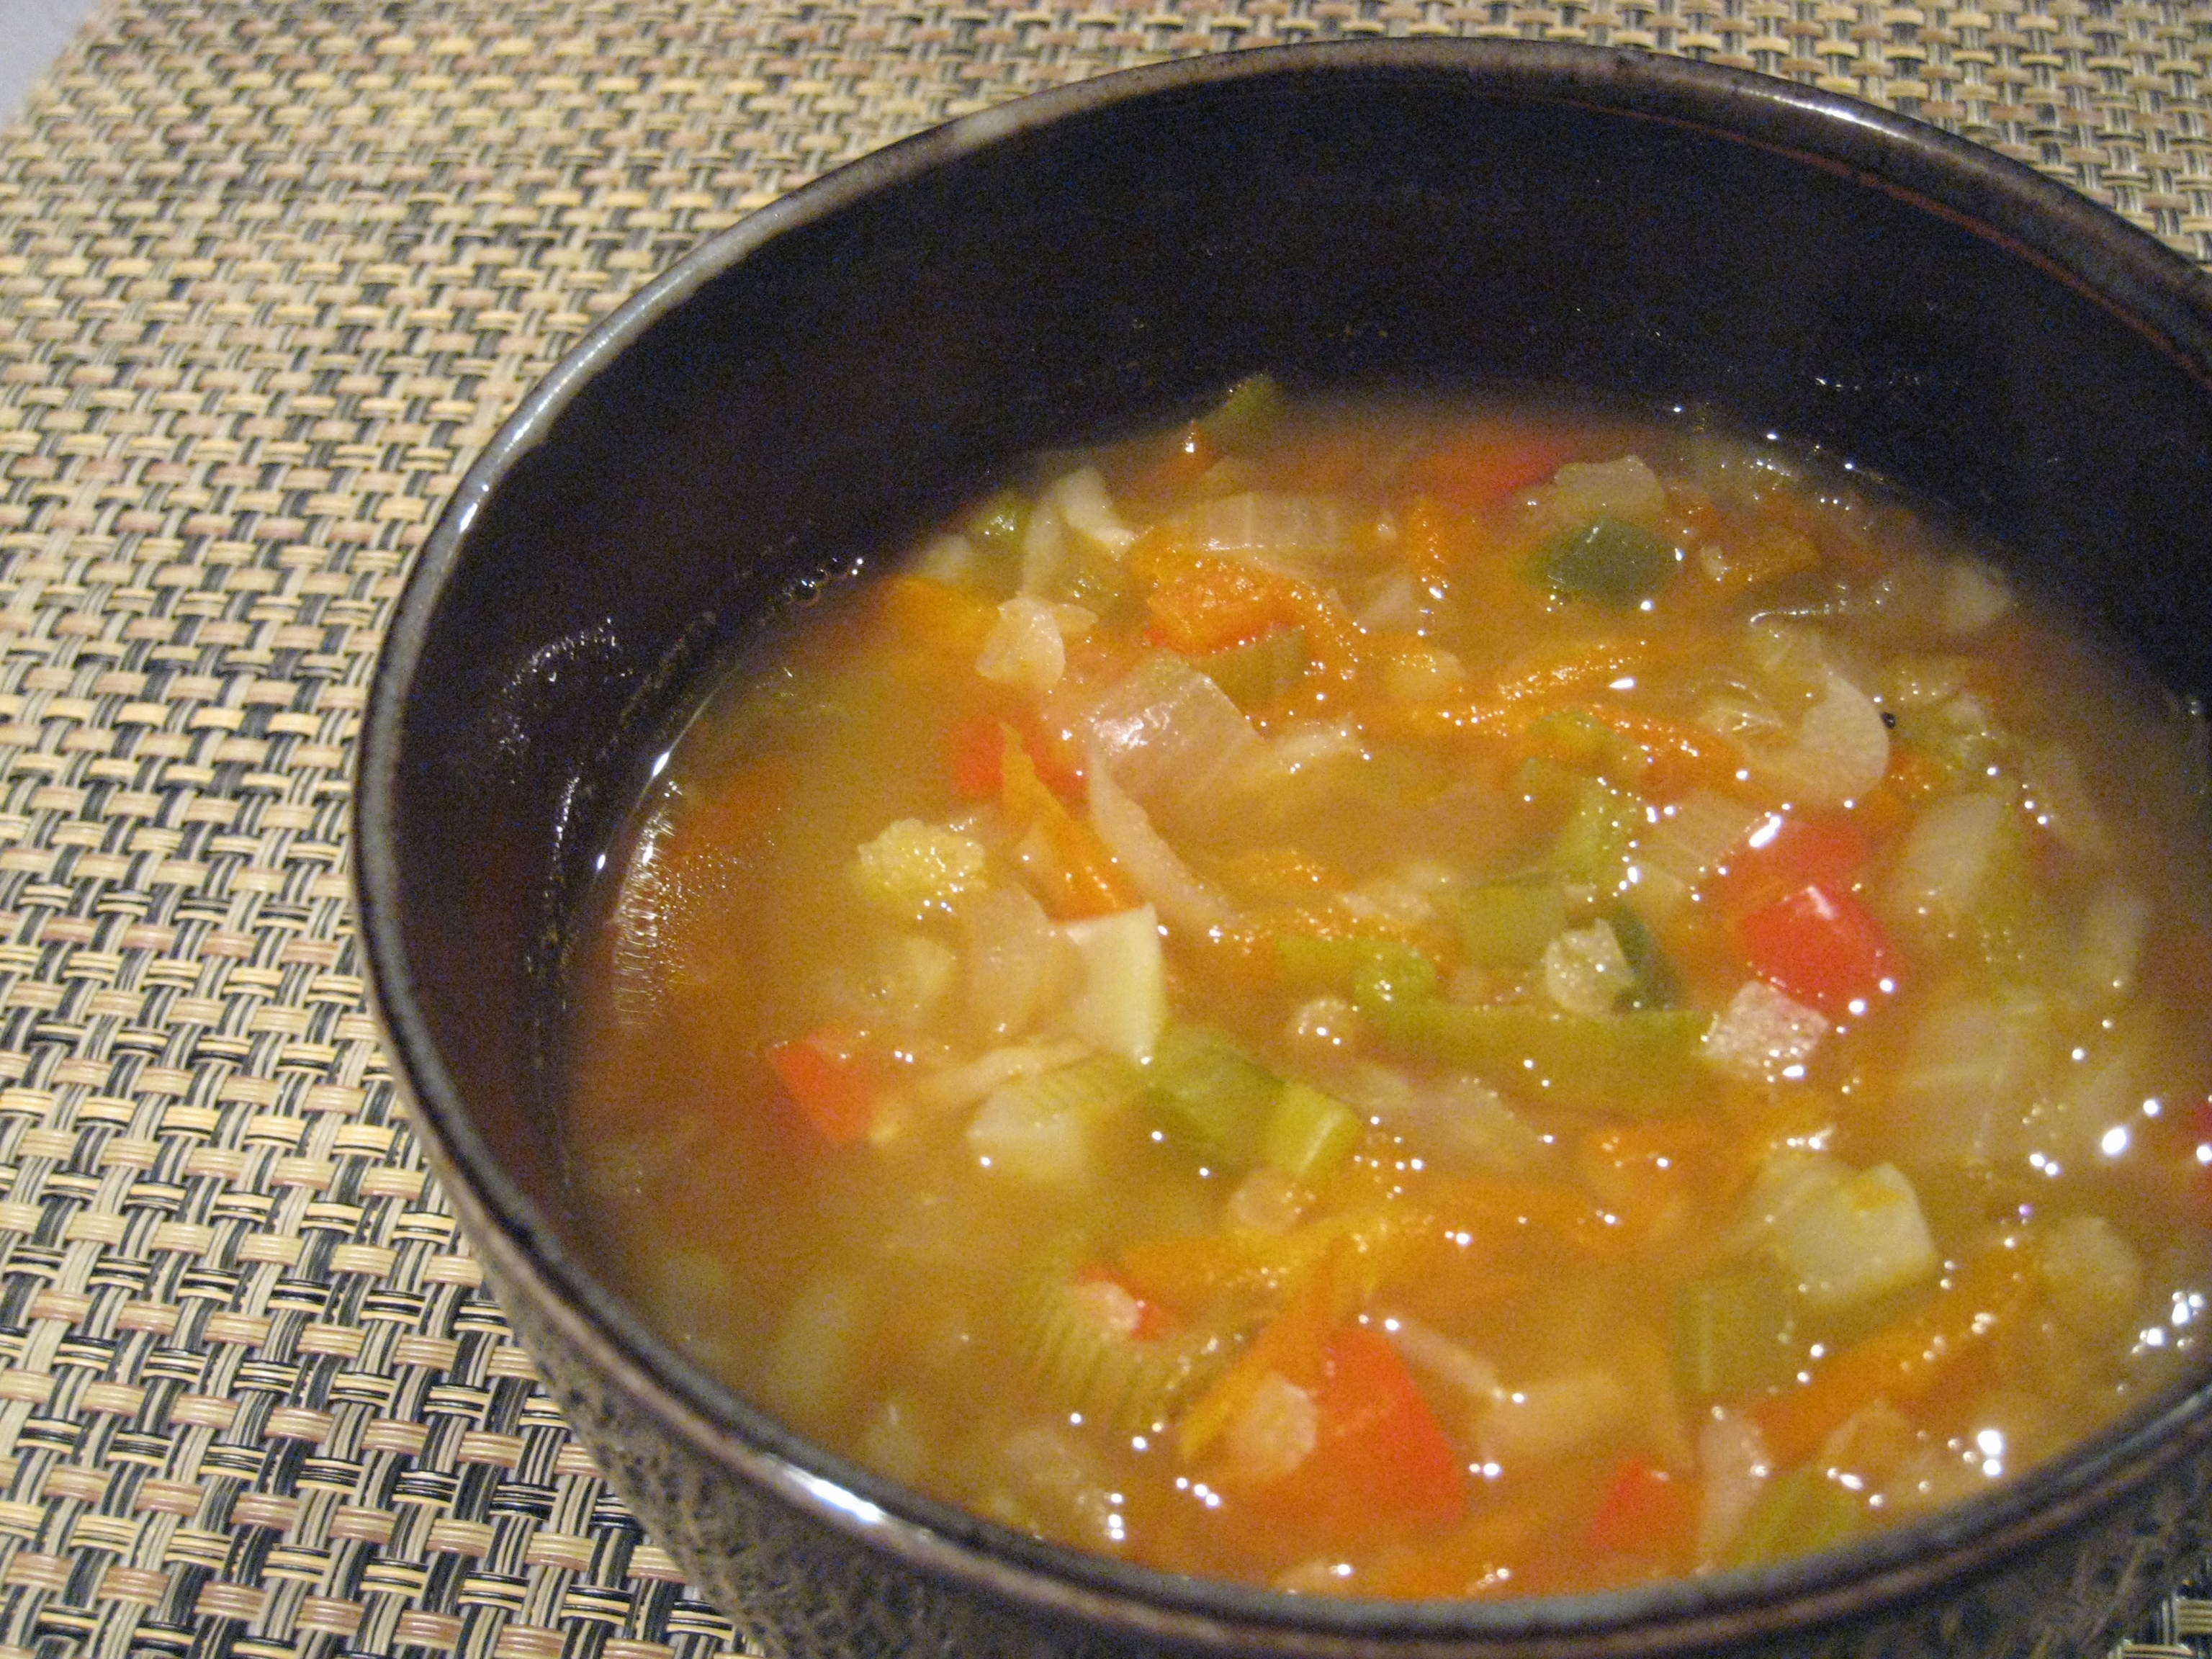 Lentil Vegetable Soup with Yogurt | Trust in Kim (she will guide thee)